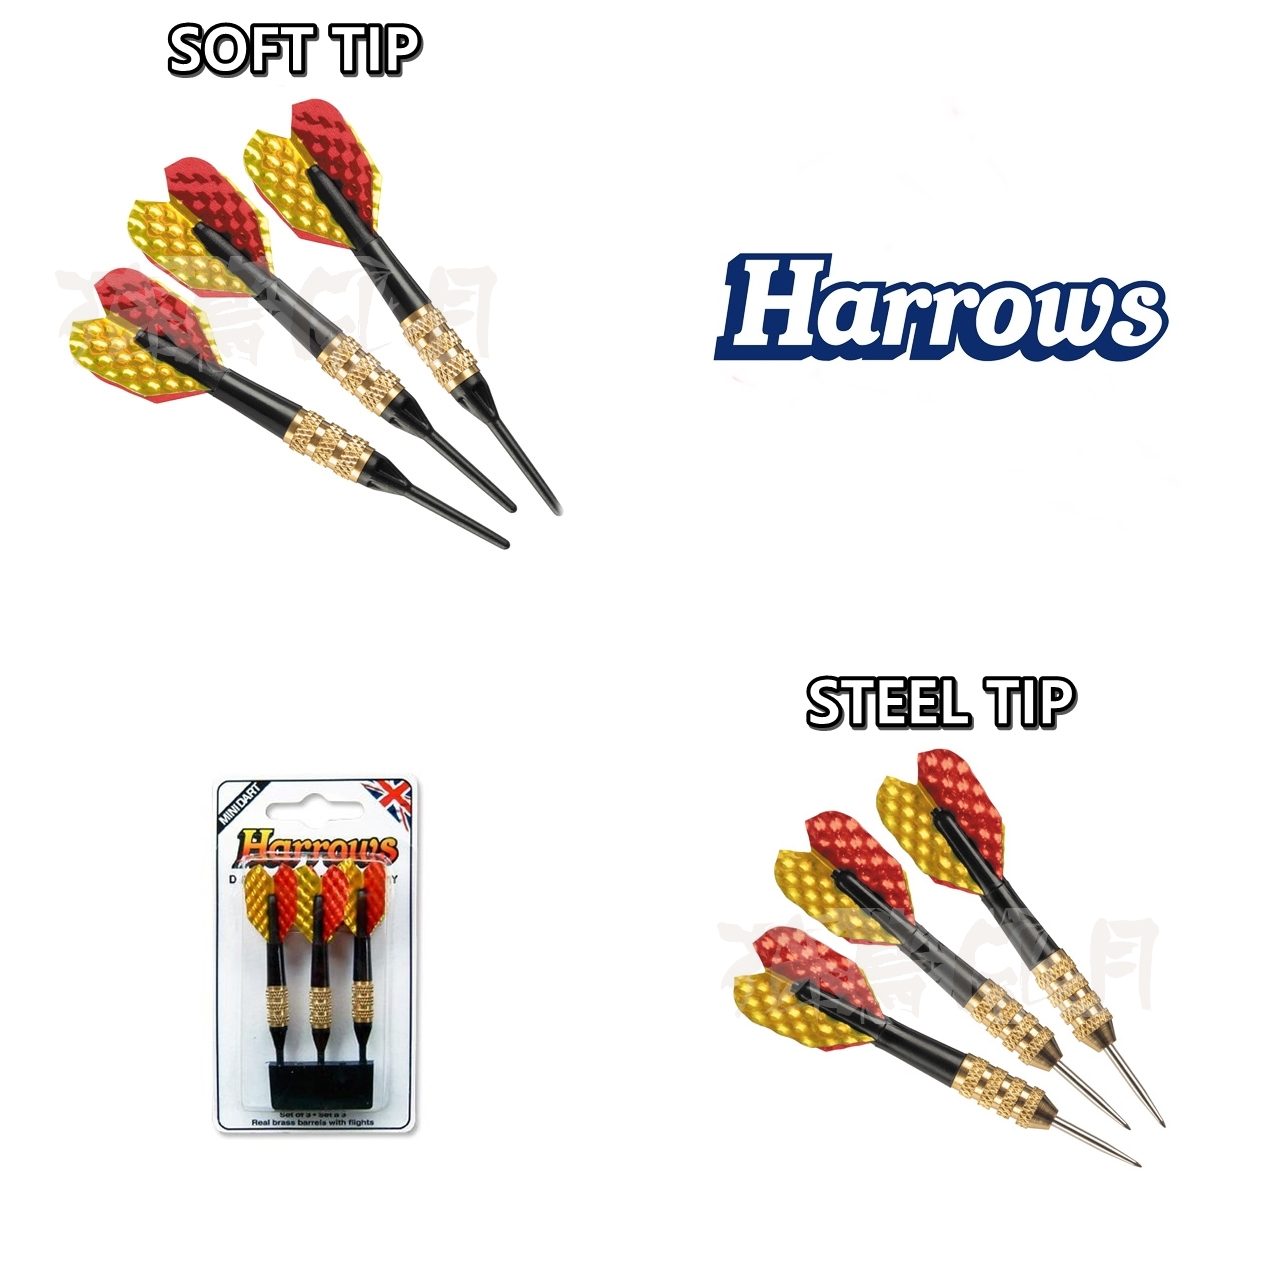 HARROWS-ACCESSORY-STEELTIP-SOFTIP-MINI-DARTS